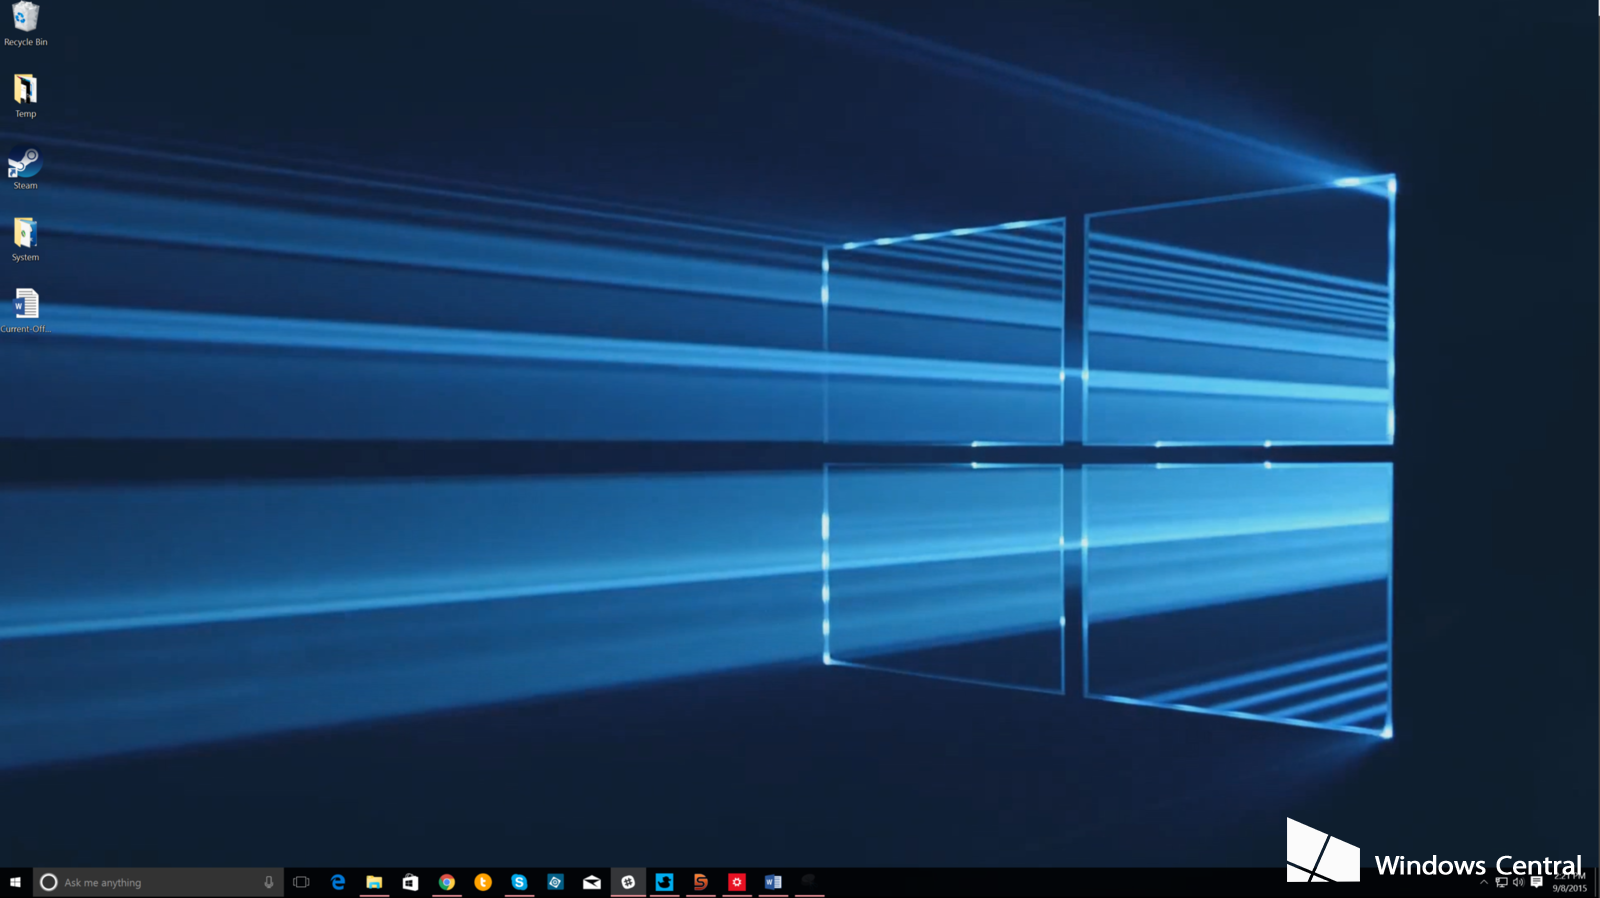 Windows Animated Wallpapers Group Wallpaper Windows 10 Moving Wallpapers Anime Wallpaper Download